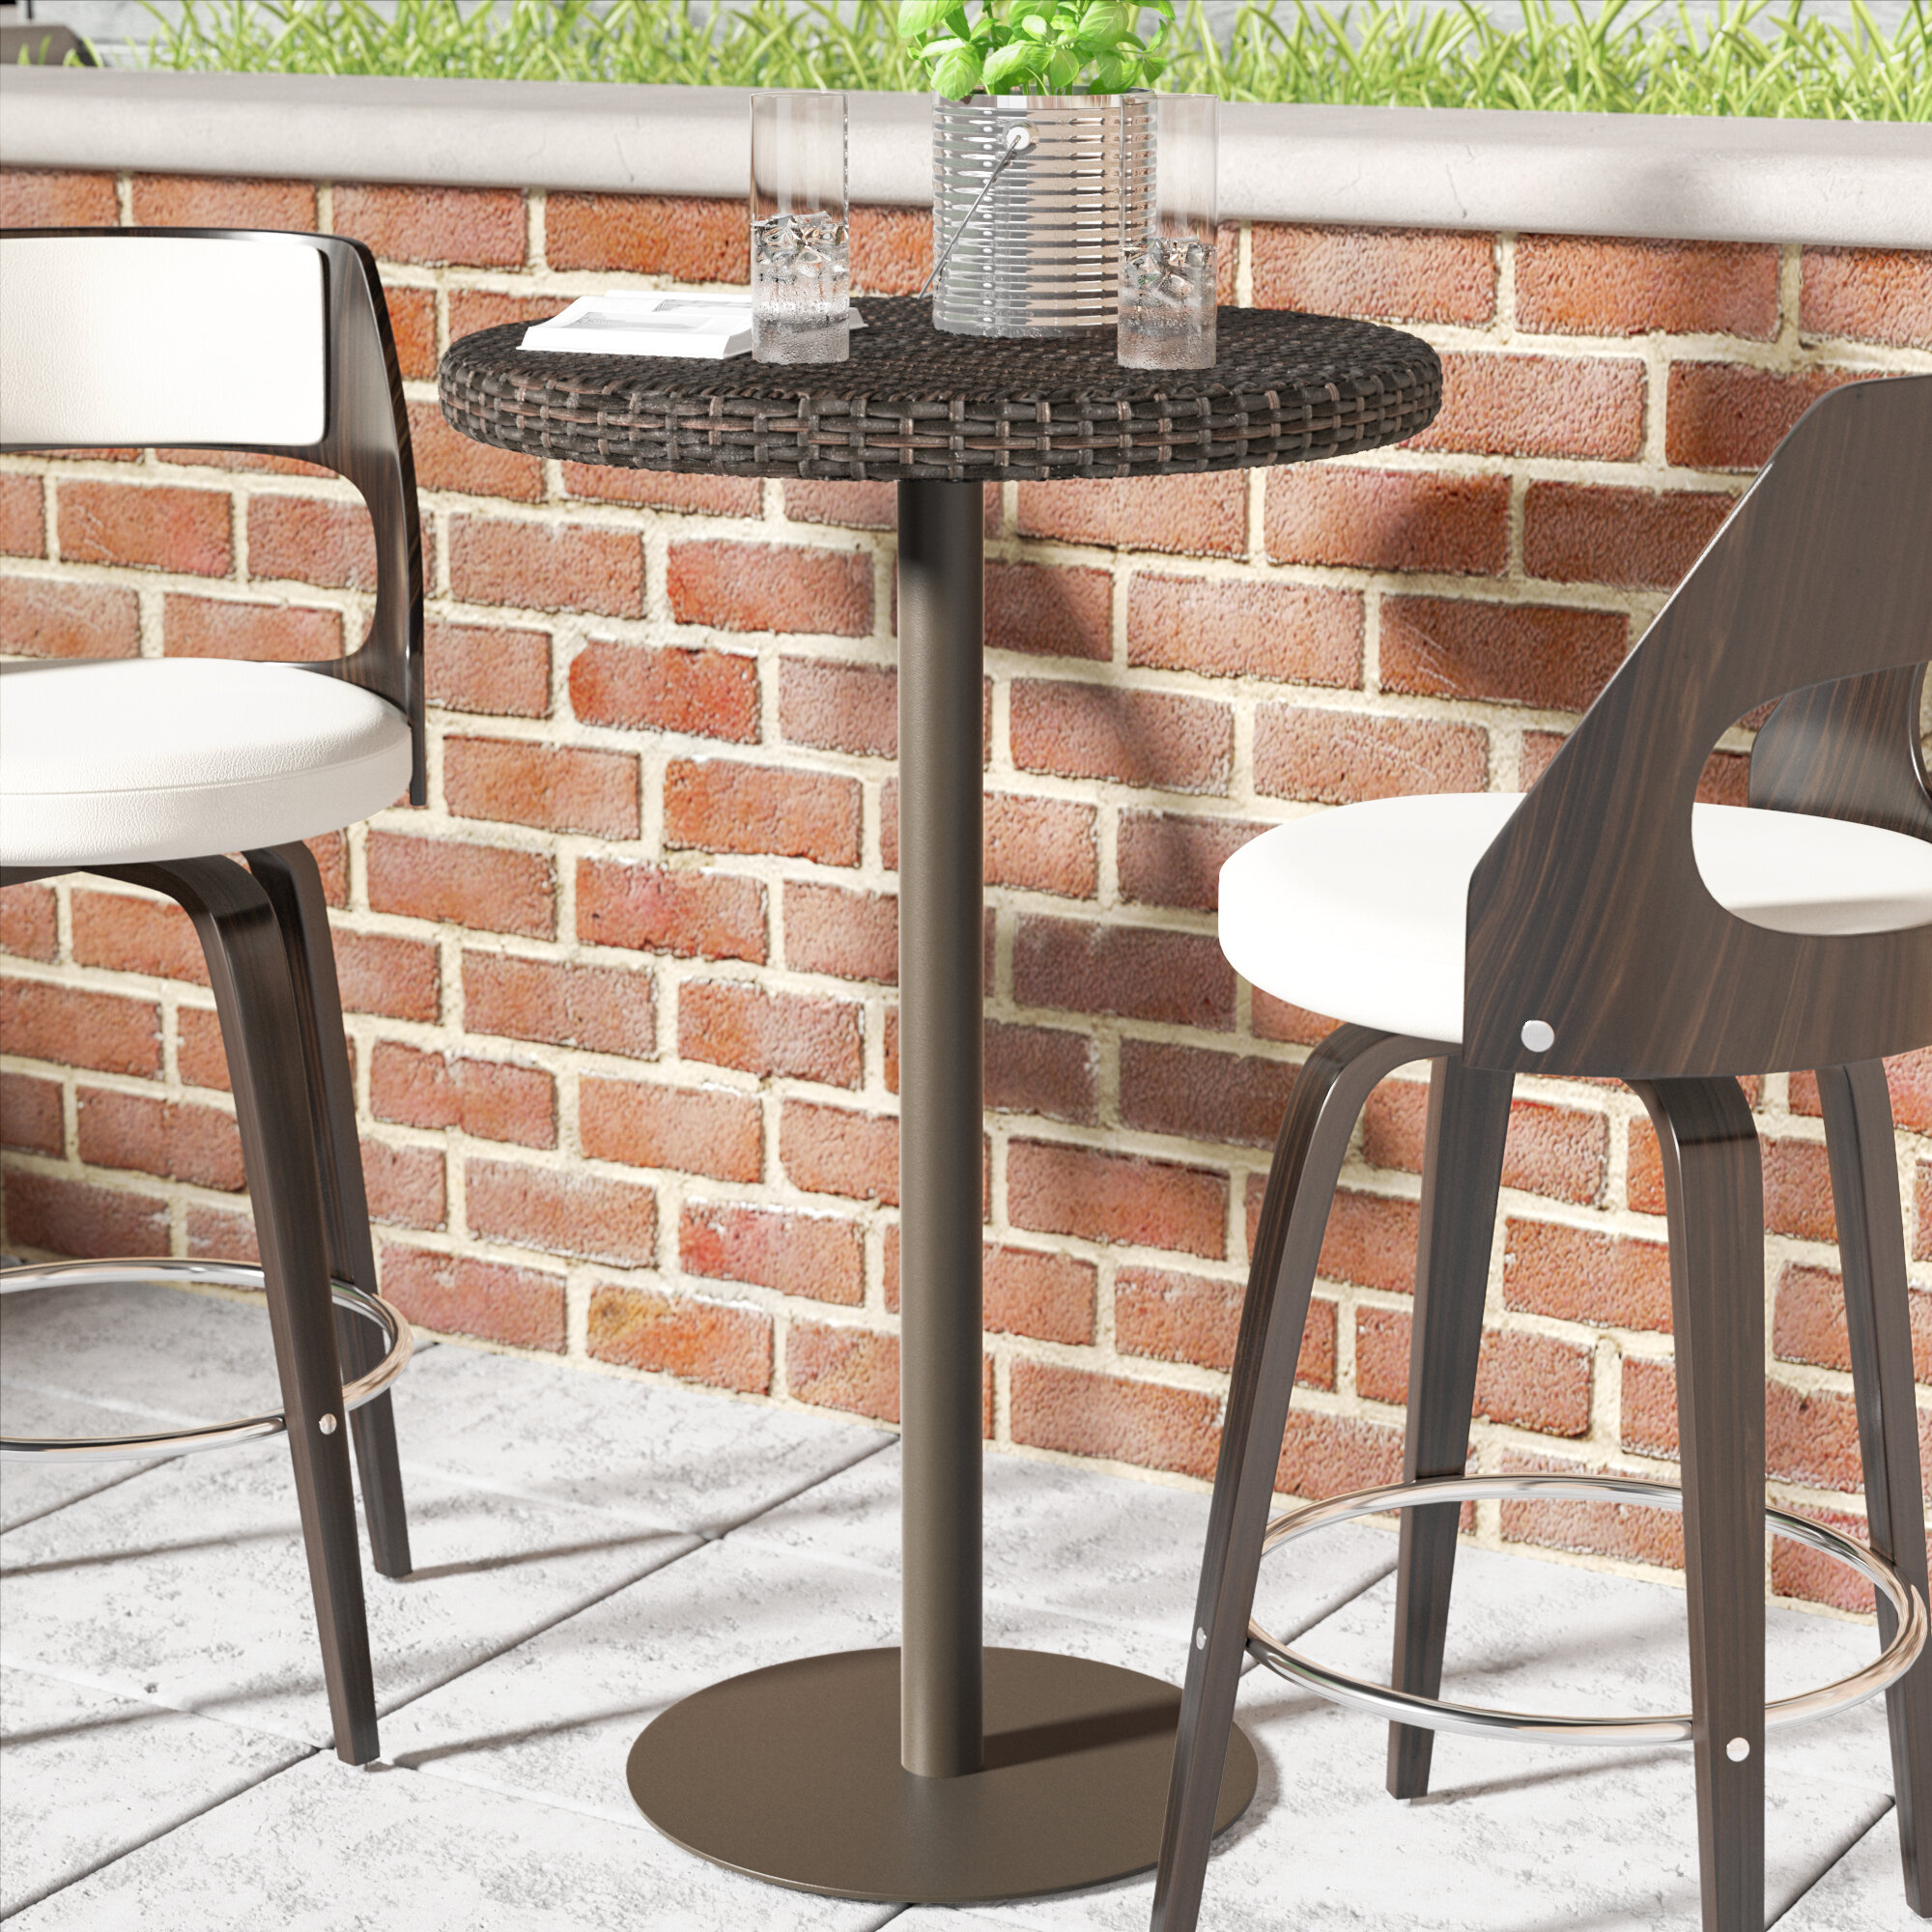 Ivy bronx crater contemporary outdoor bar table reviews wayfair